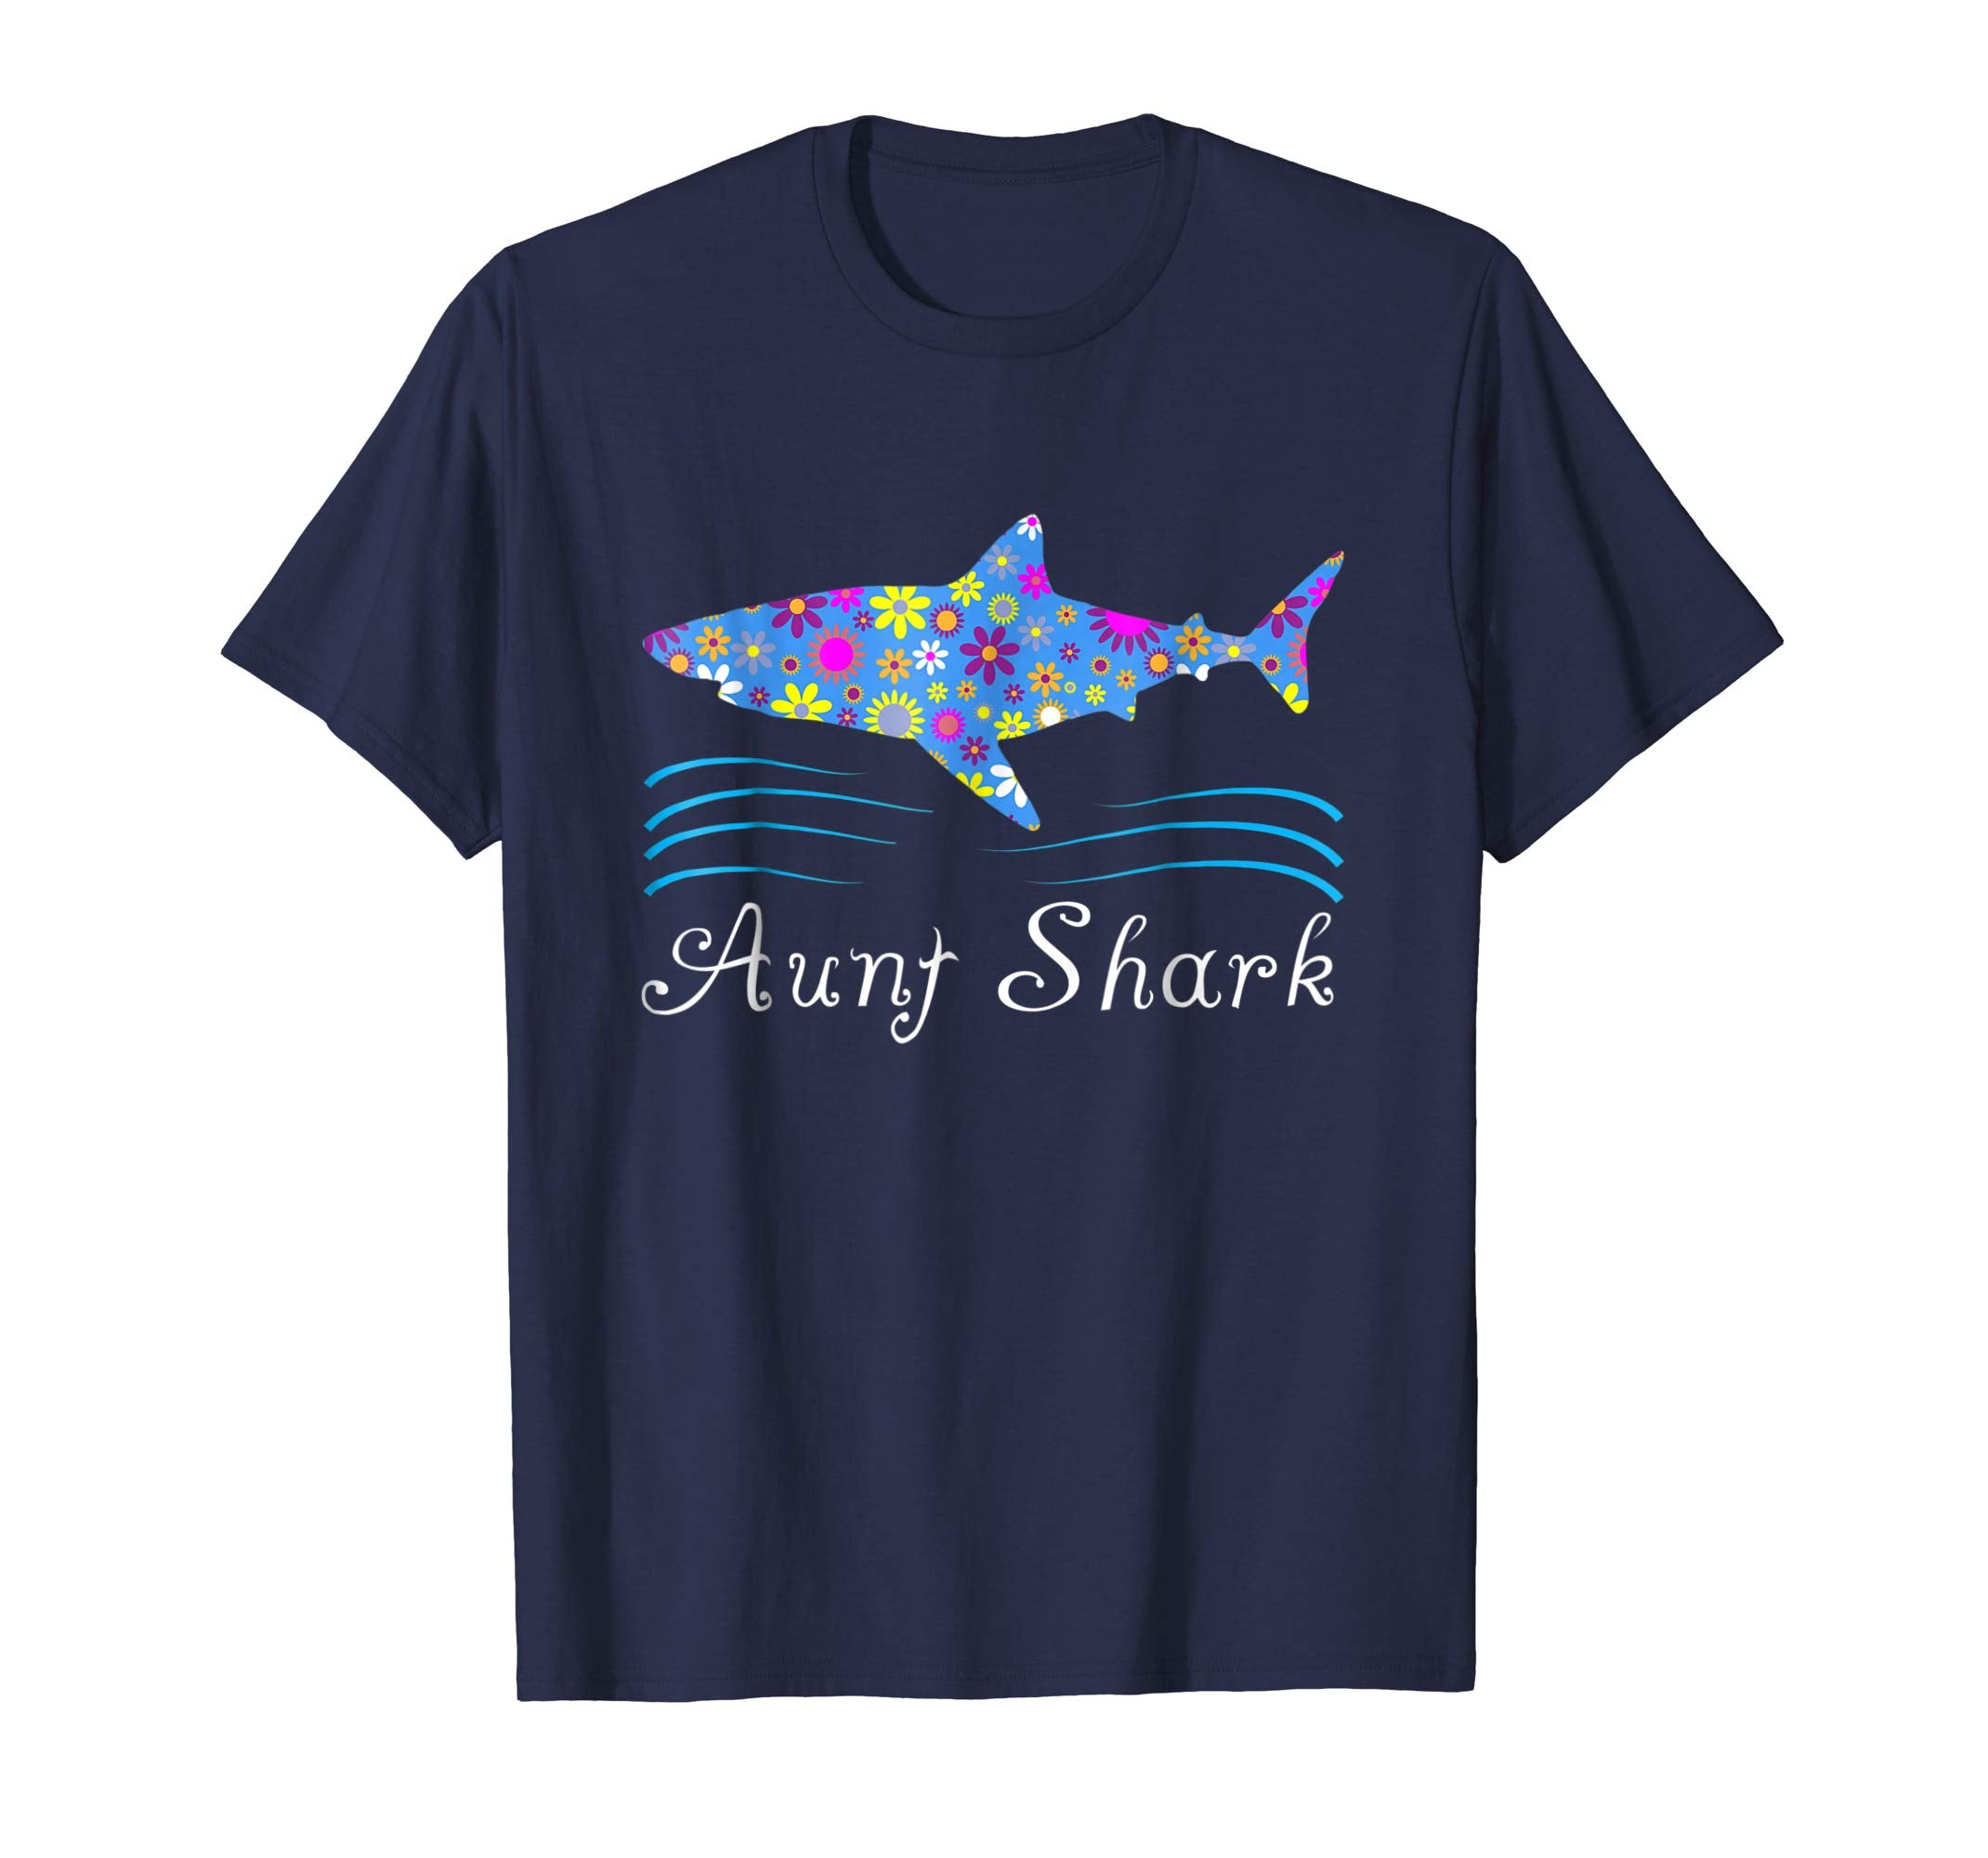 Aunt Shark Shirt - Cute Floral Gift Idea